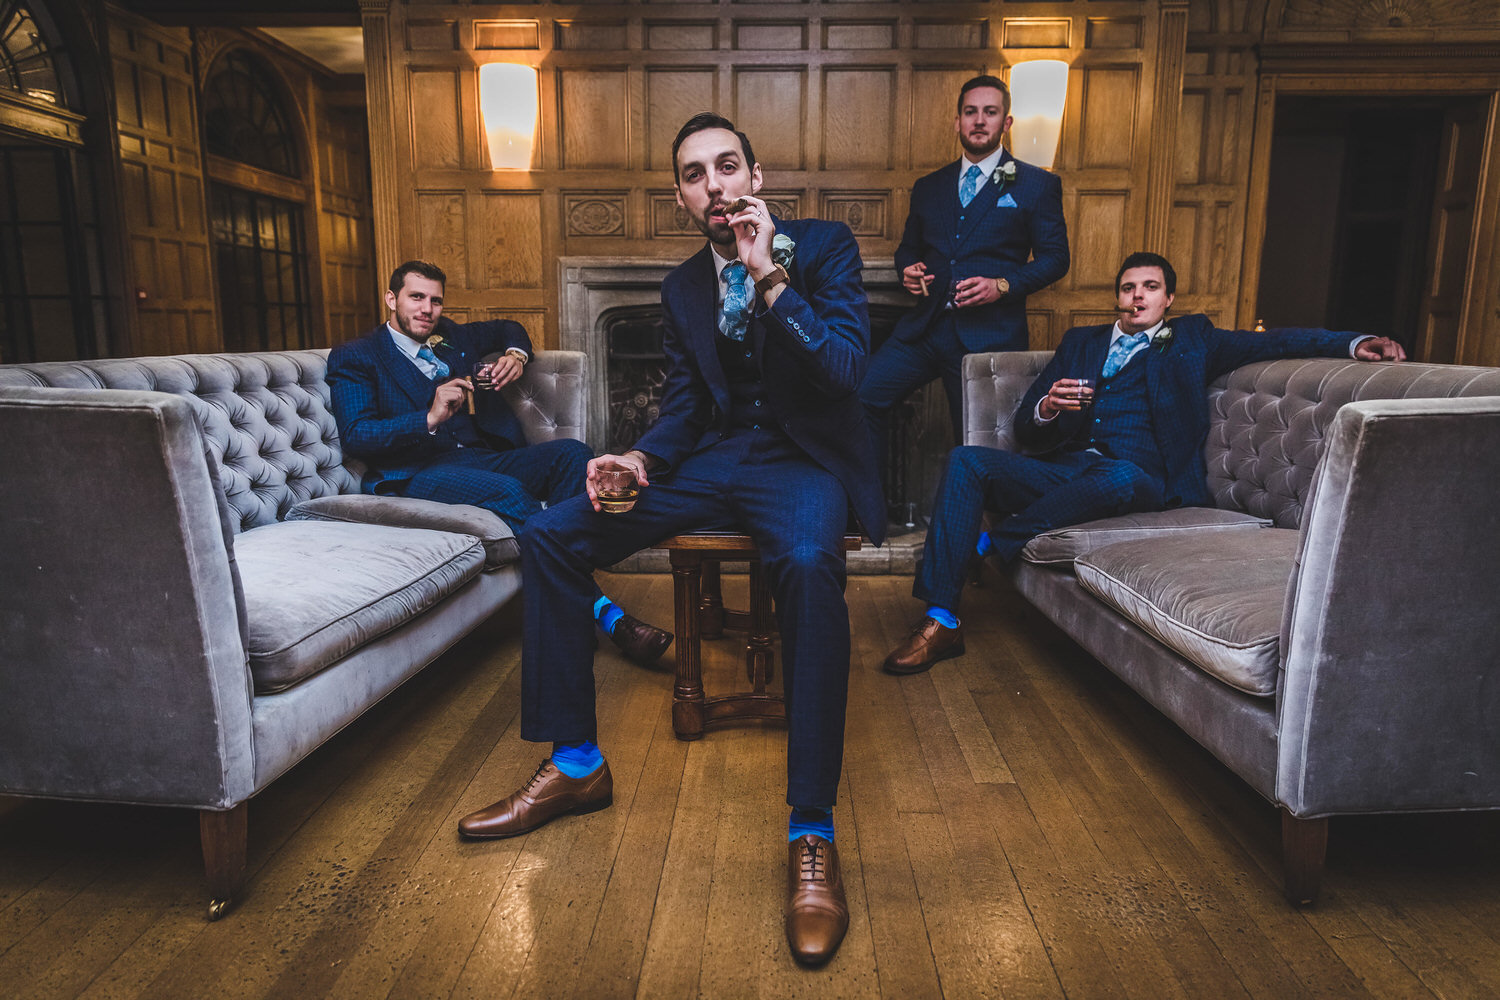 groomsmen with cigars at wedding